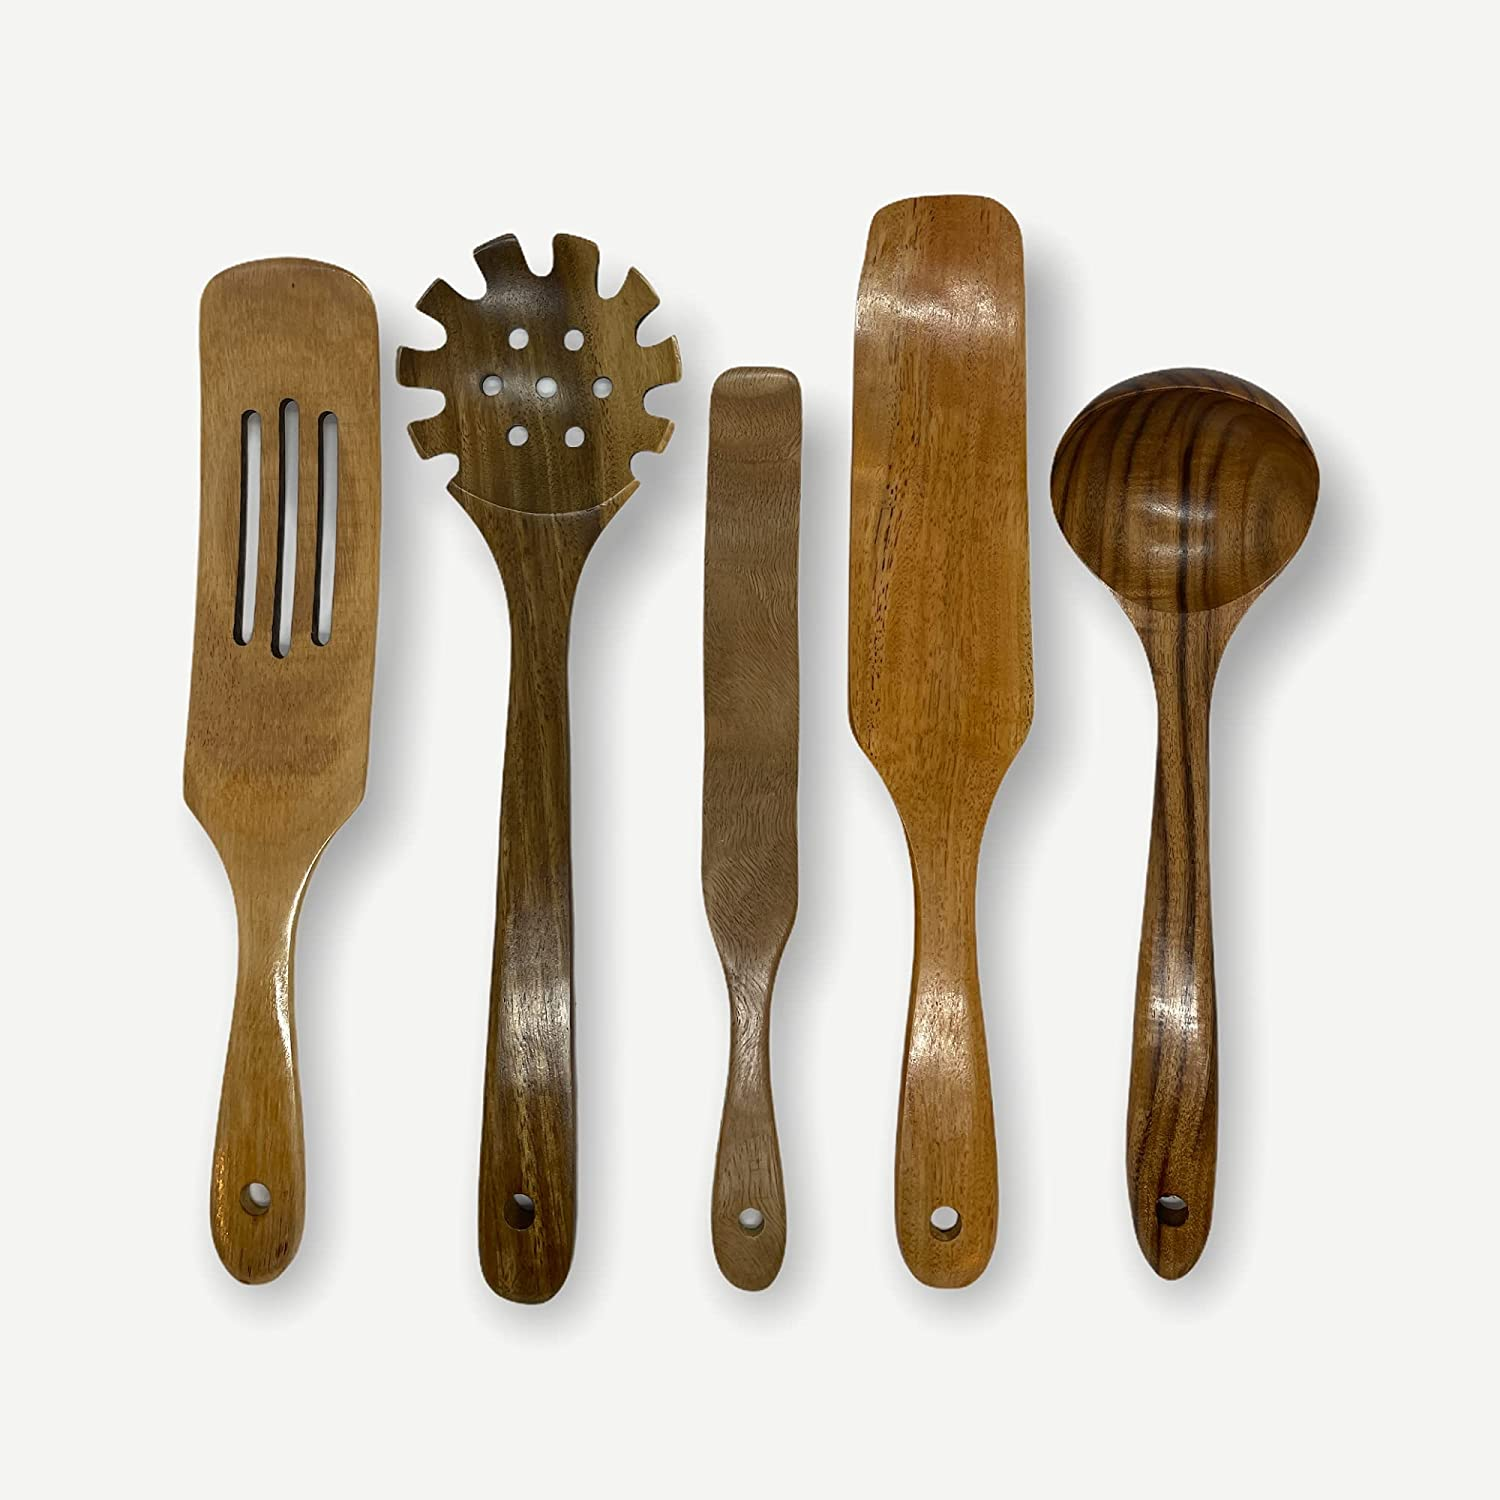 Regular discount Jenwa's- 5pcs Wooden New Free Shipping kitchen utensil set M For Hanging Hole With